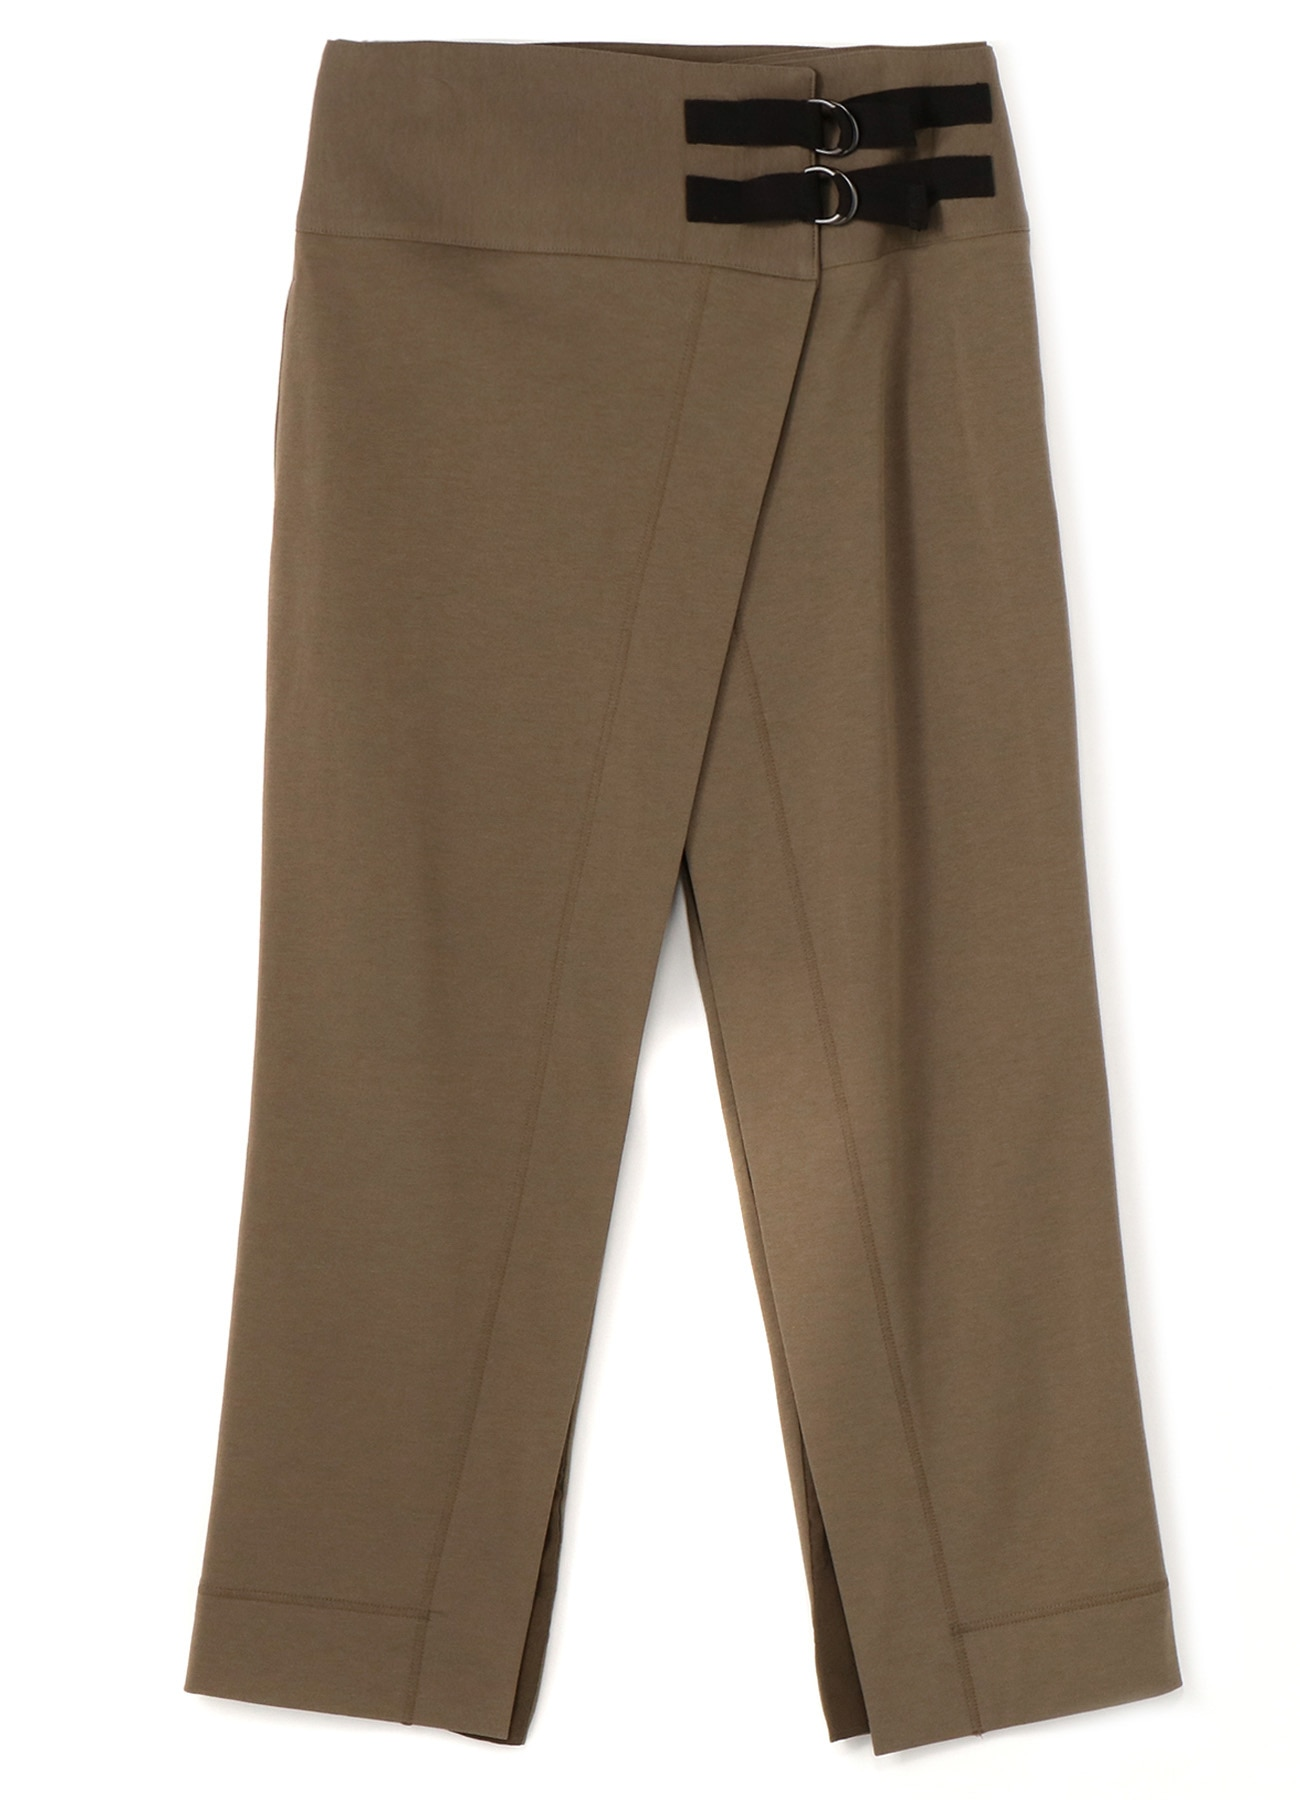 RISMATbyY's COTTON SUVIN GIZA FLEECE W BELT MED WIDE WRAP PANTS